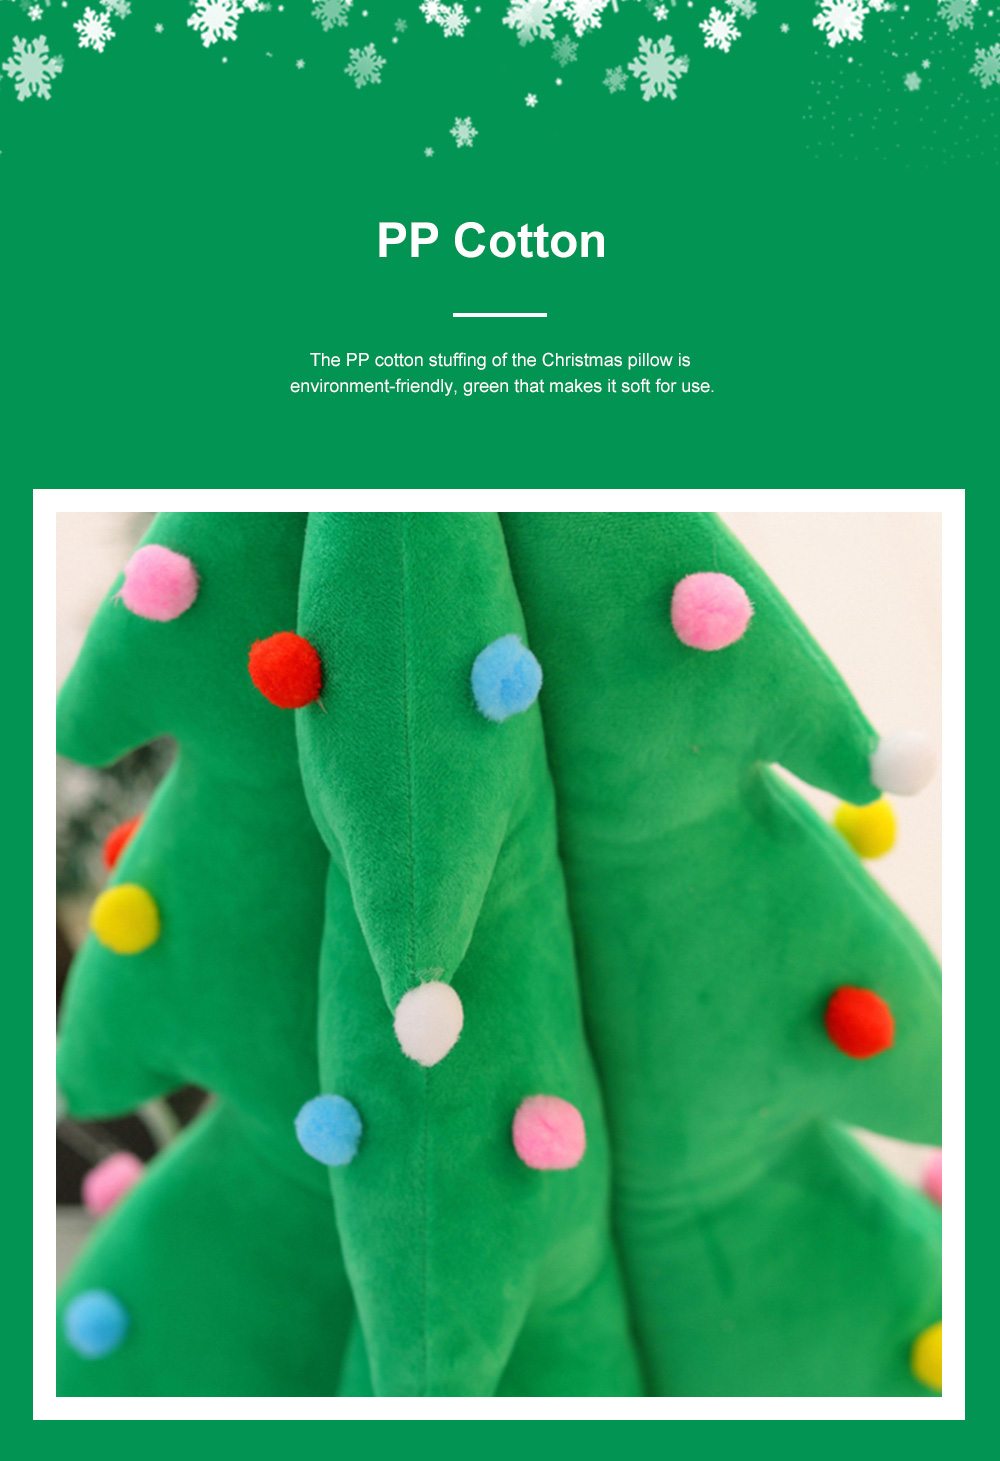 Music Christmas Tree Pillow for Gift Choice Luminous Musical Throw Pillow Stuffed Toy Environment-friendly PP Cotton Bolster 4